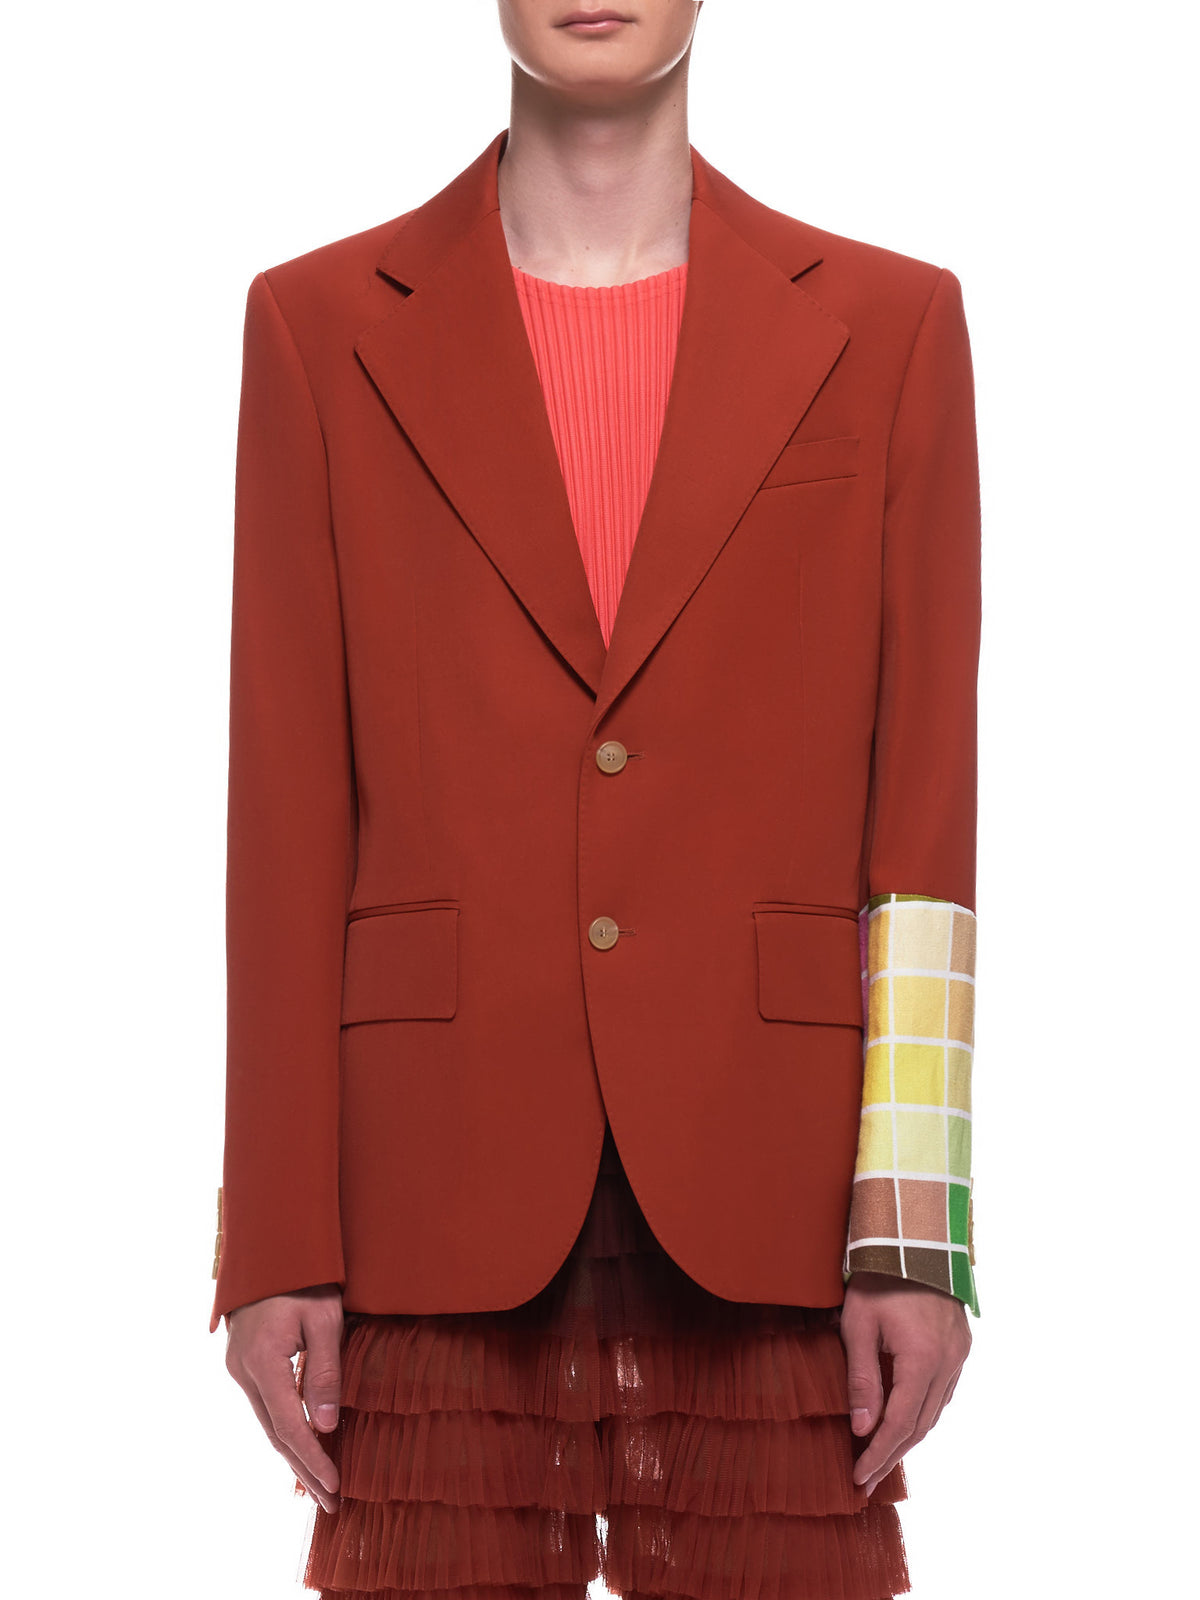 Color Brick Blazer (1004-A-BRICK-RED)